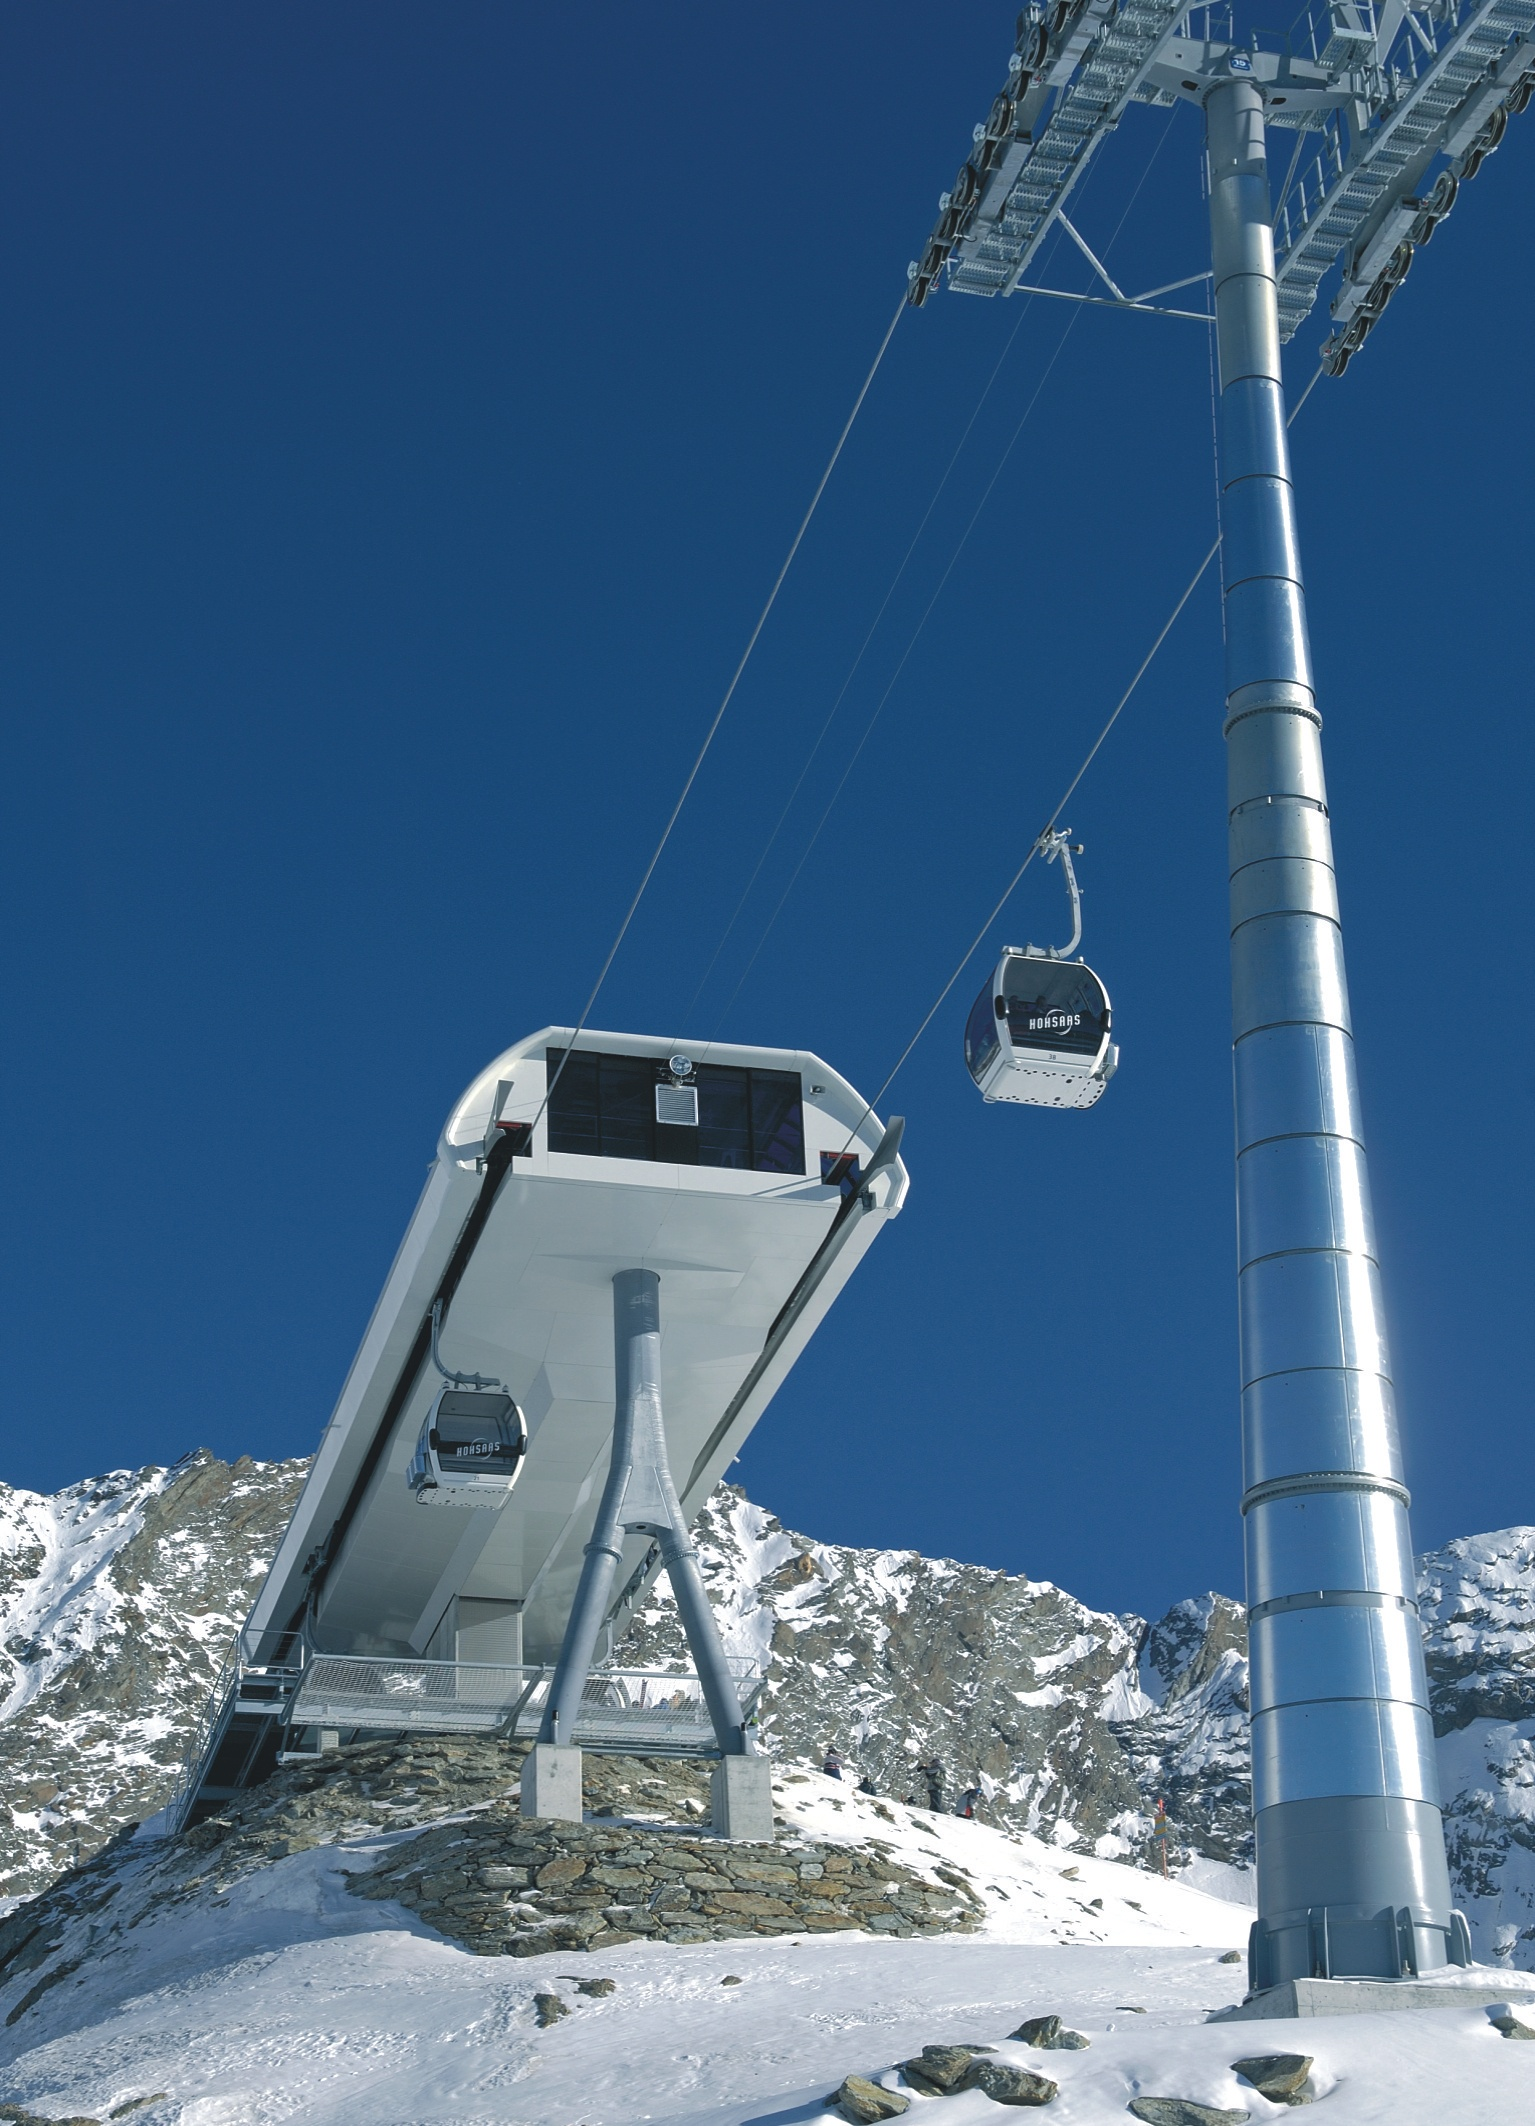 Salzmann produces facade panels for cable car stations